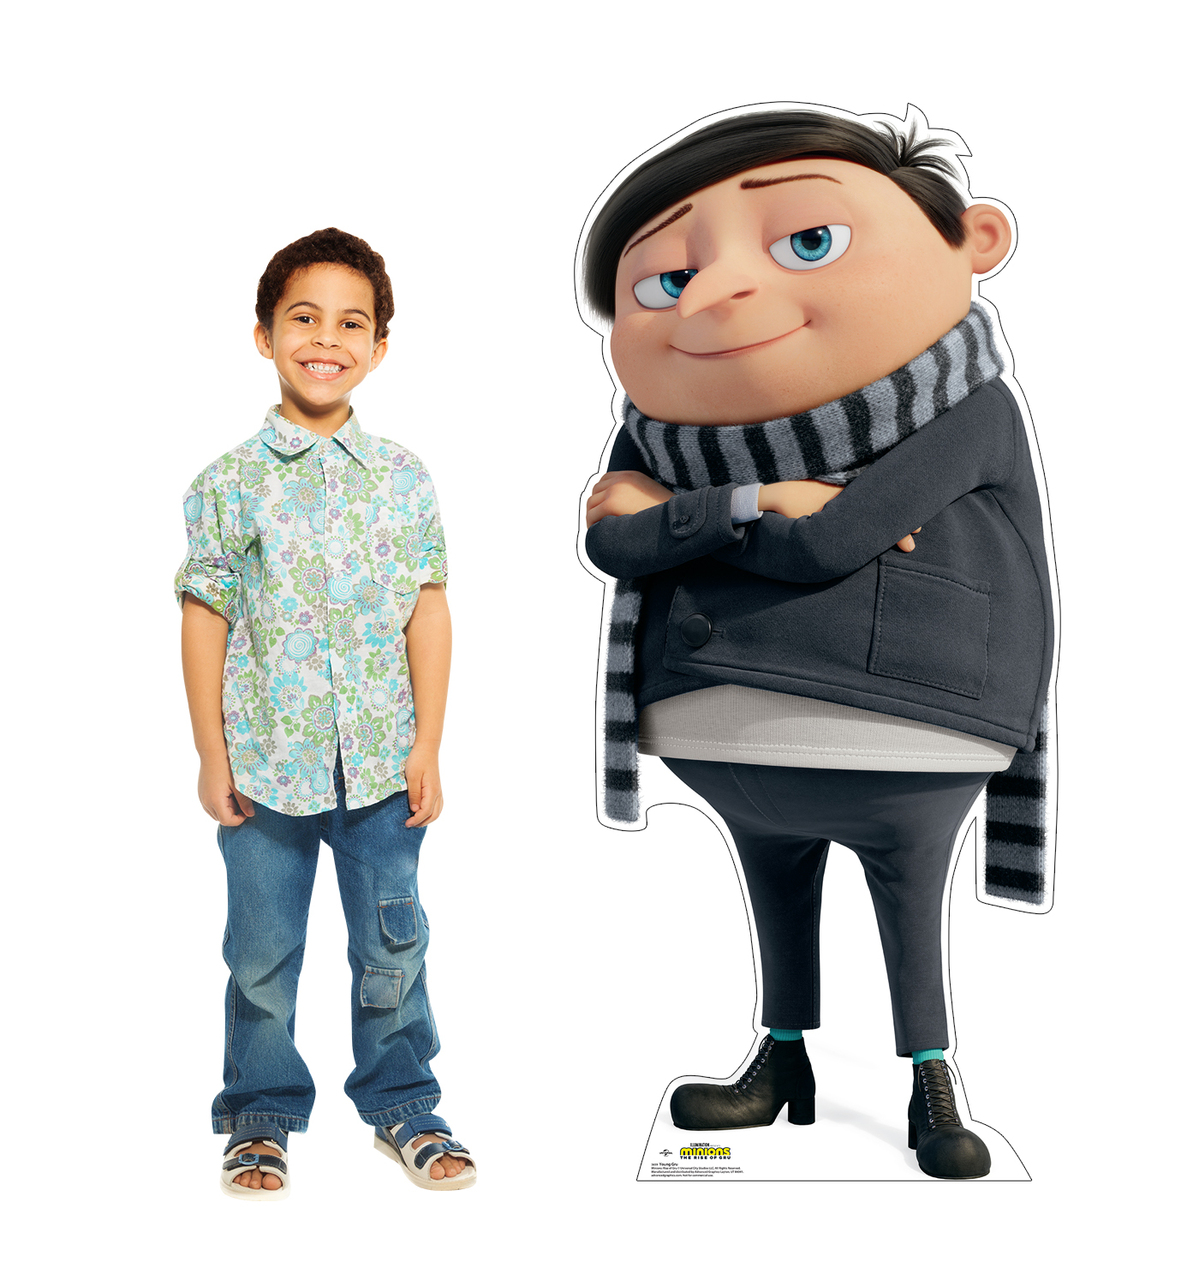 Life-size cardboard standee of Young Gru from the new movie Minions Rise of Gru with model.